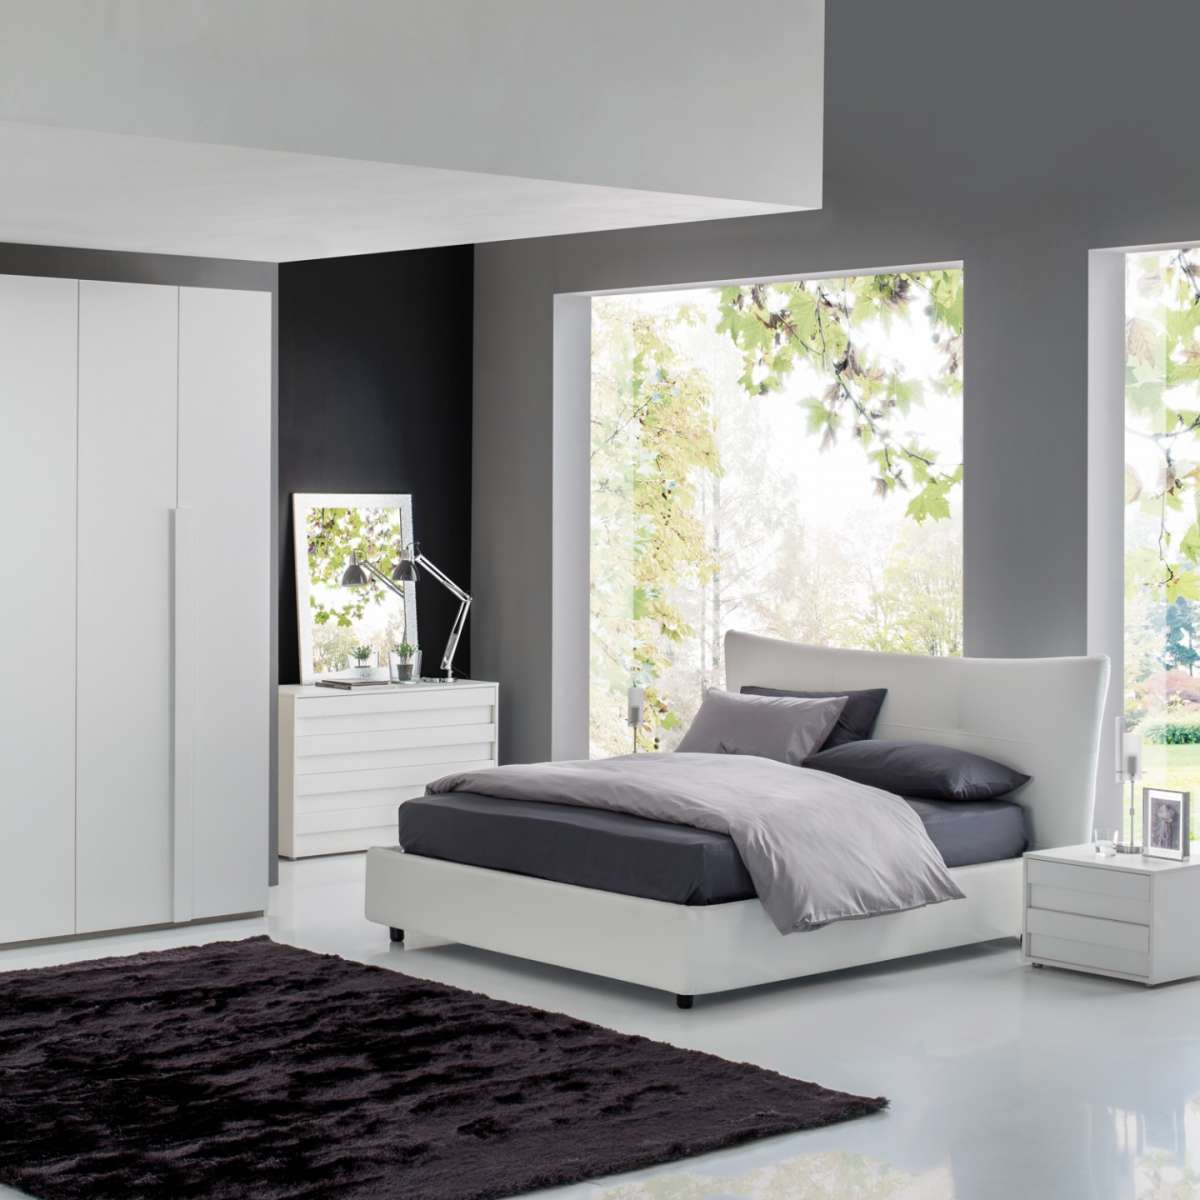 Letto alba semeraro for Mobilia catalogo